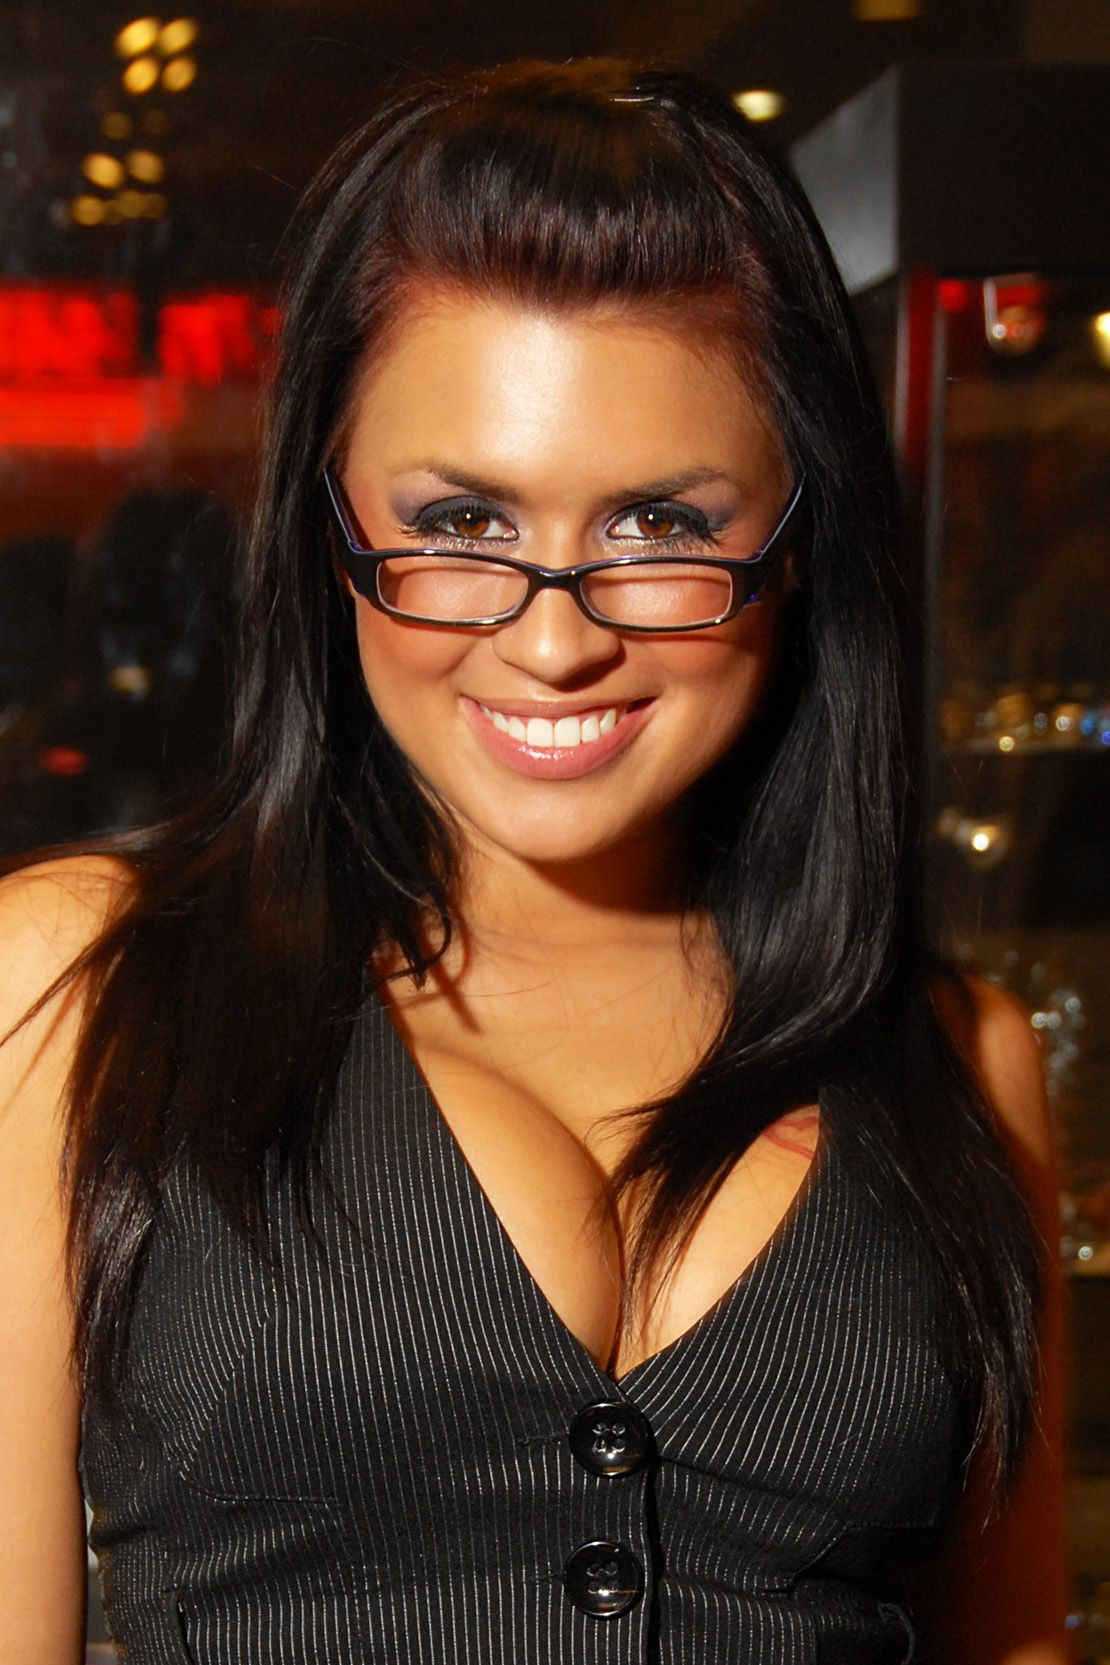 eva angelina, the reason my husband picked out my glasses..she's